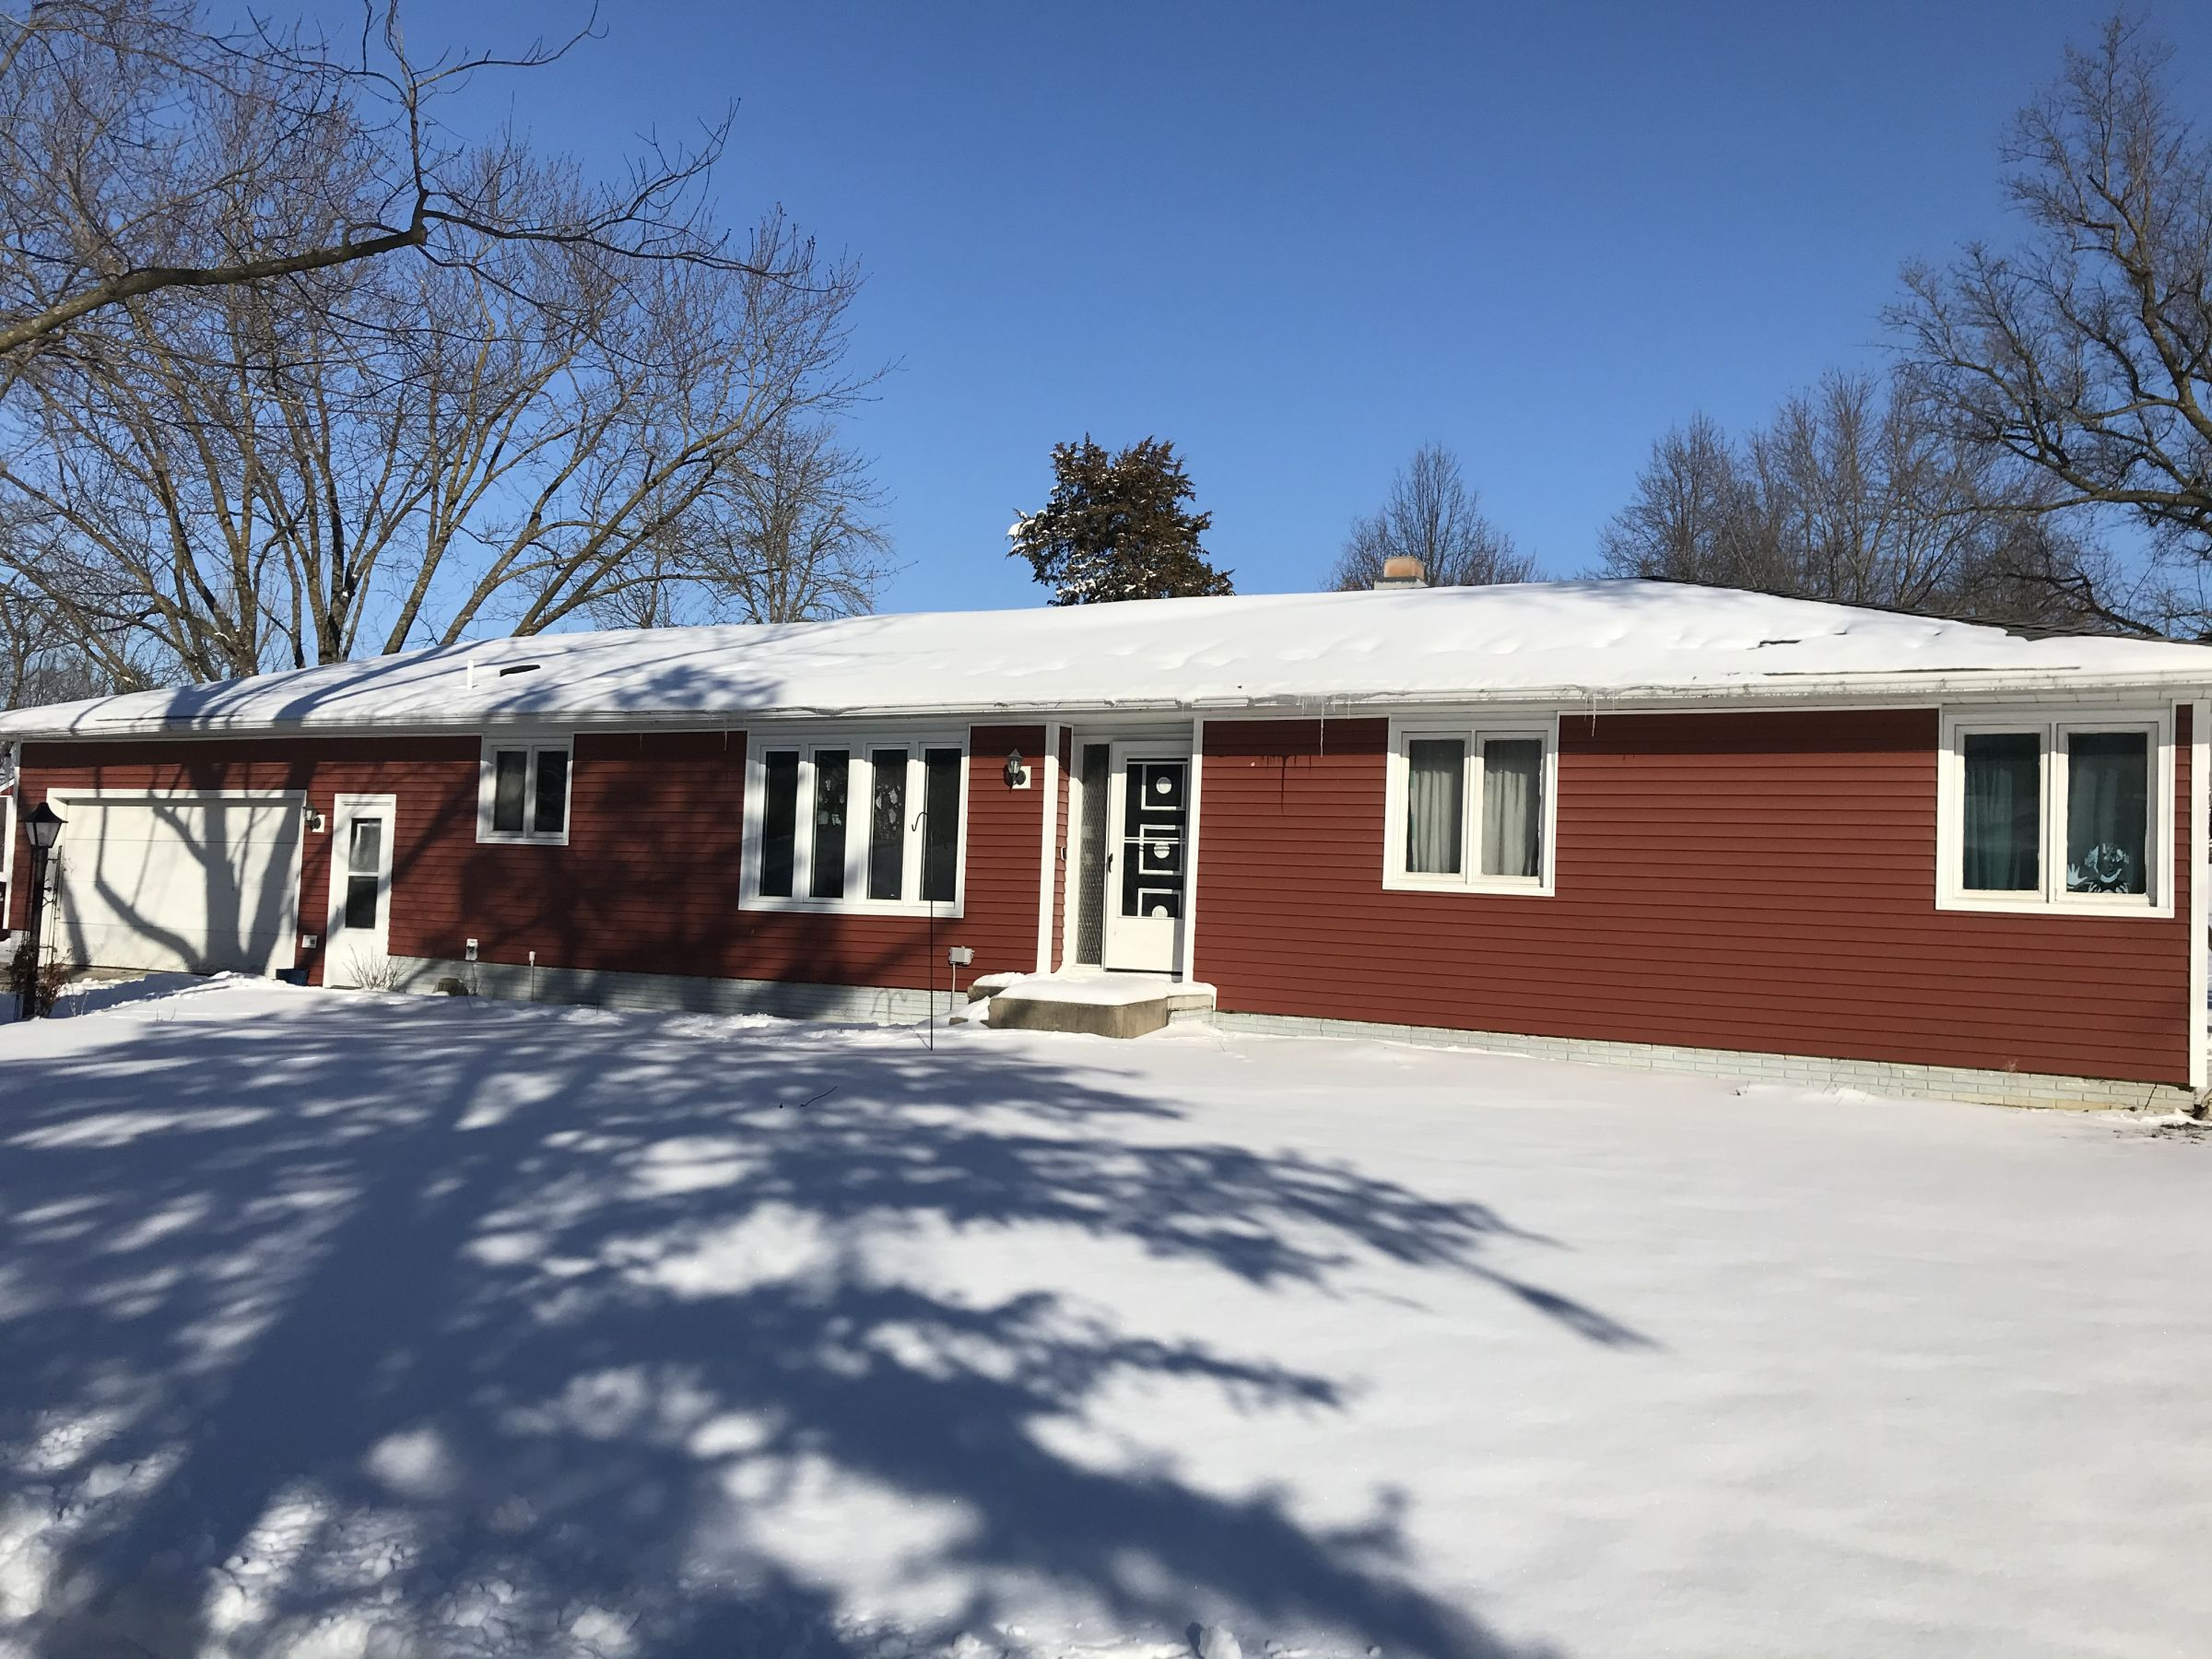 residential-lucas-county-iowa-0-acres-listing-number-15320-0-2021-02-01-152111.jpg